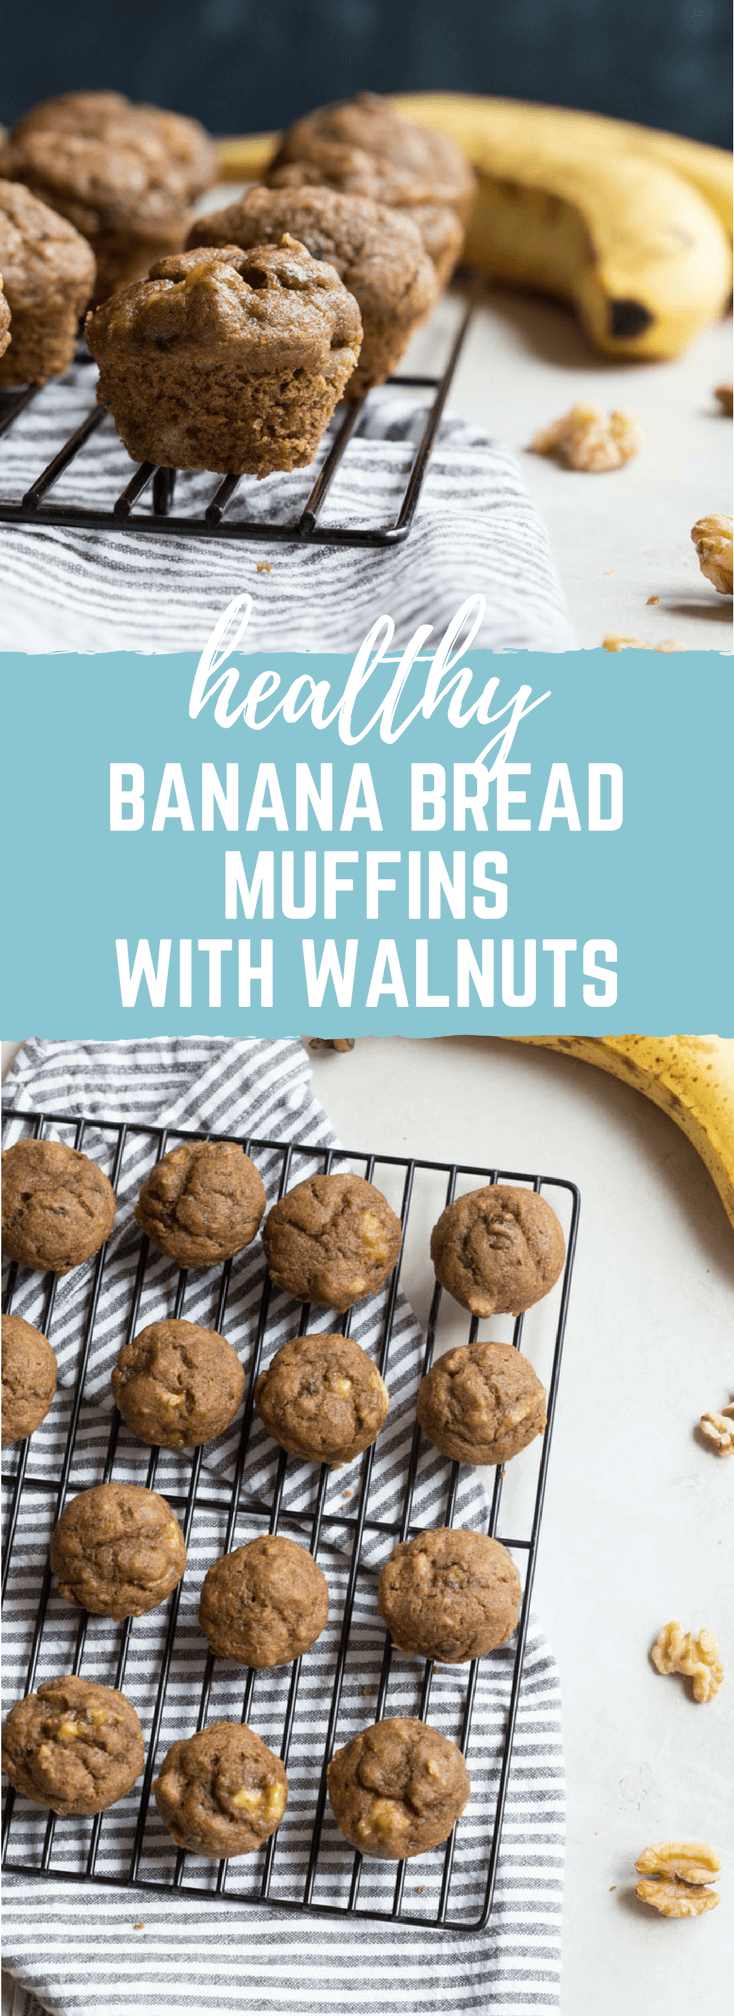 These Healthy Banana Bread Muffins with Walnuts are what dreams are made of! So moist and packed with that tasty banana flavor, these are incredibly easy banana bread muffins.